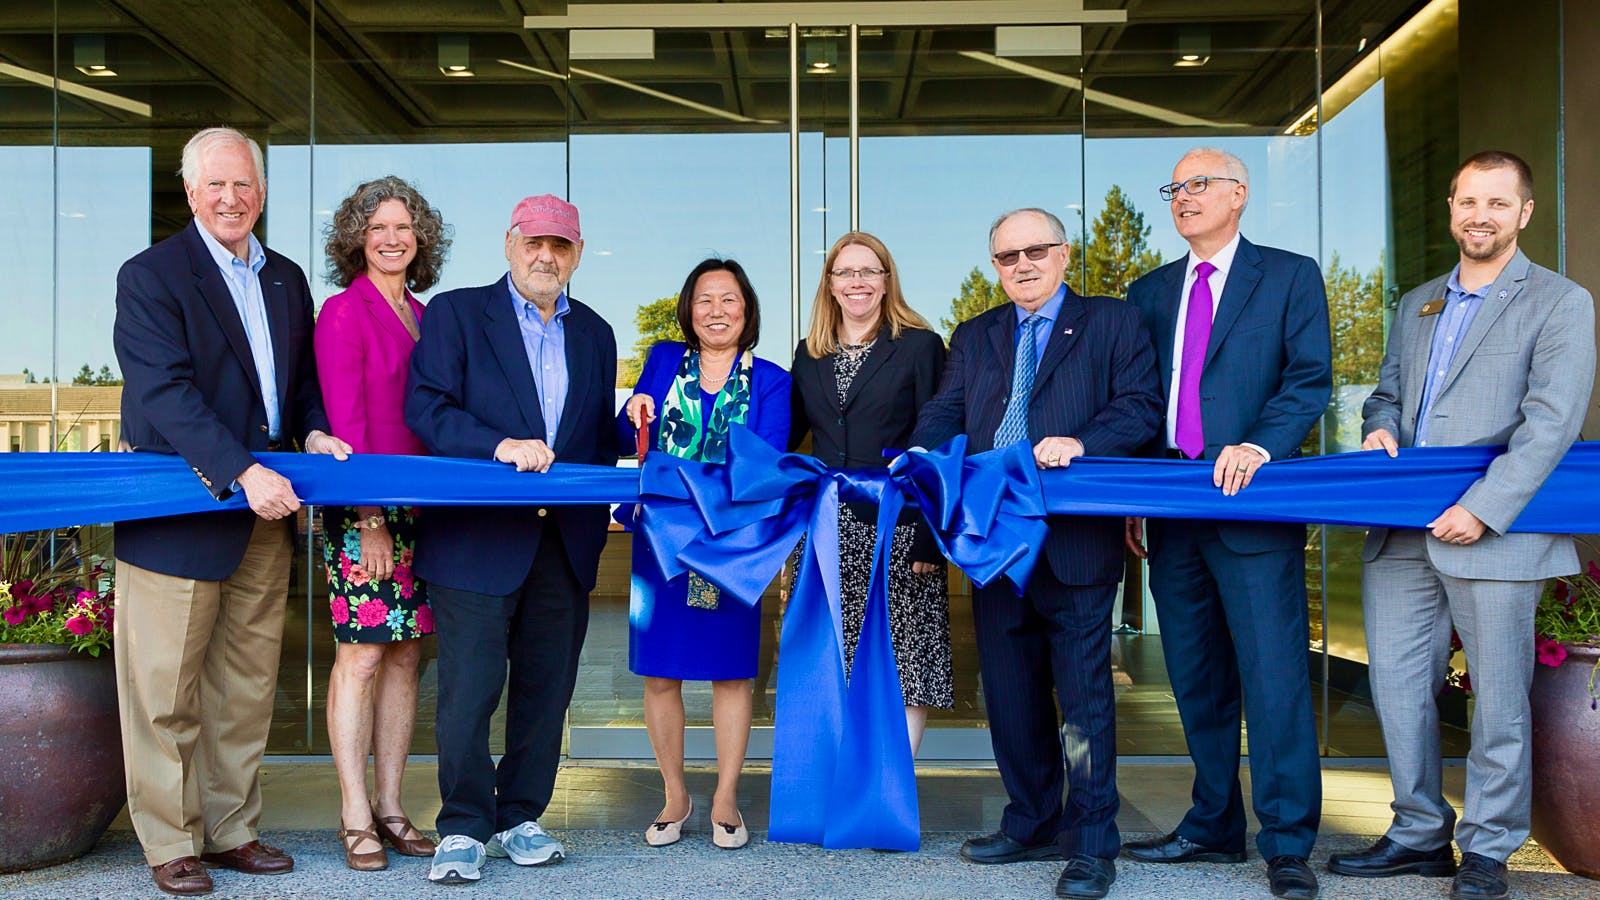 Sonoma State University Unveils Wine Spectator Learning Center